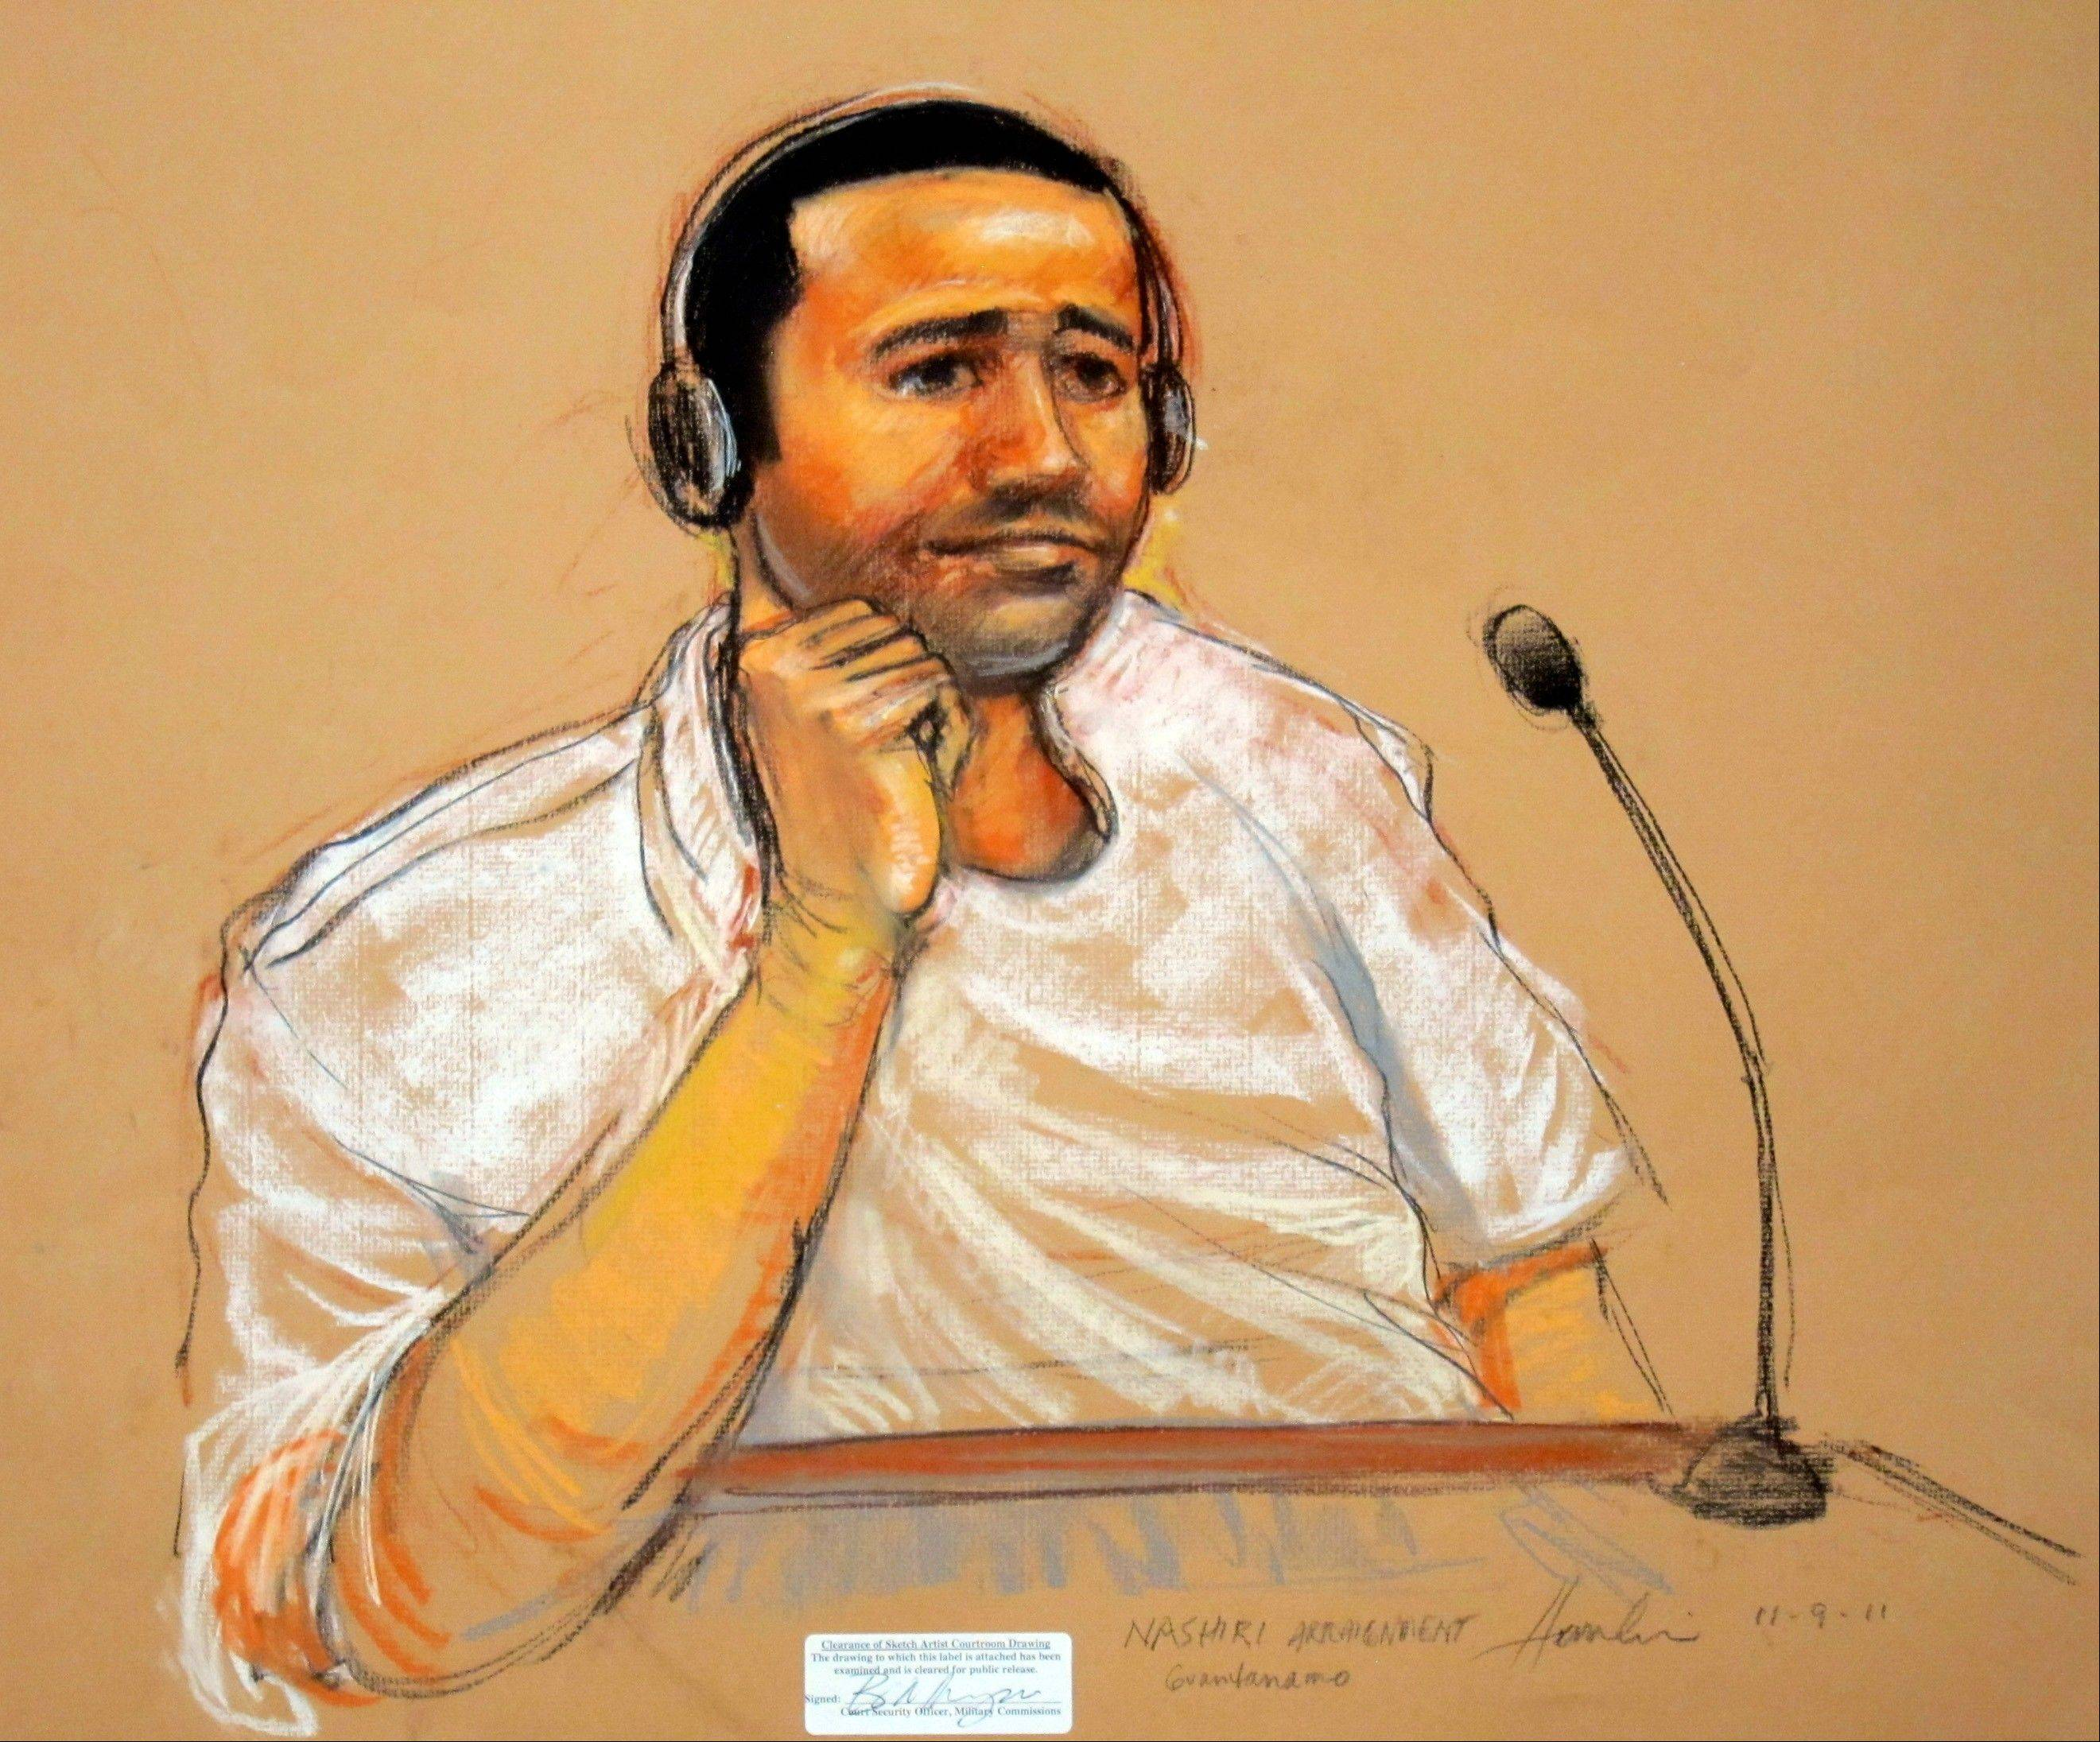 Courtroom sketch of Abd al-Rahim al-Nashiri, who is accused of orchestrating the deadly attack on the USS Cole.